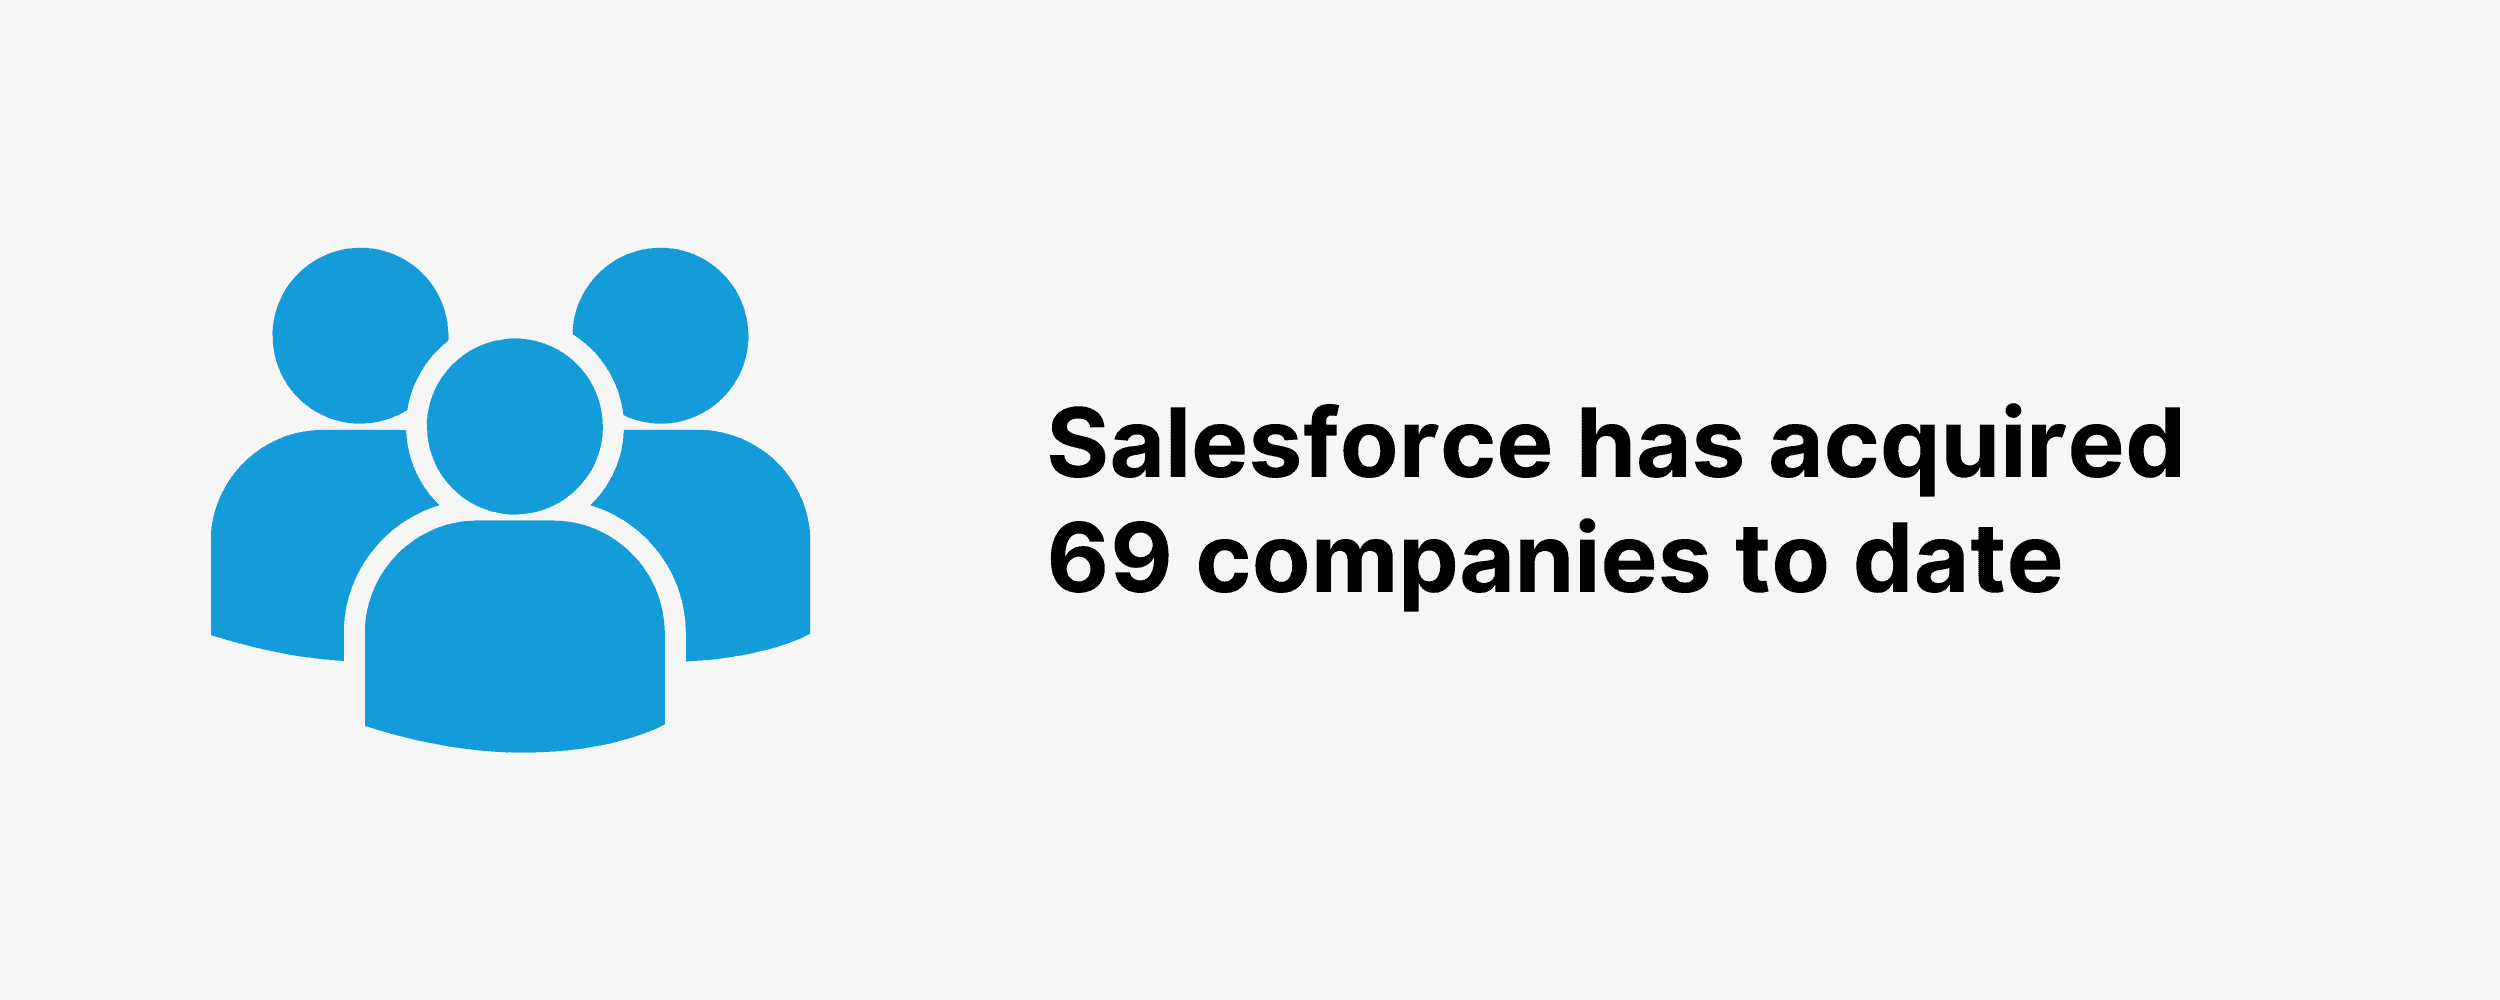 Salesforce has acquired 69 companies to date